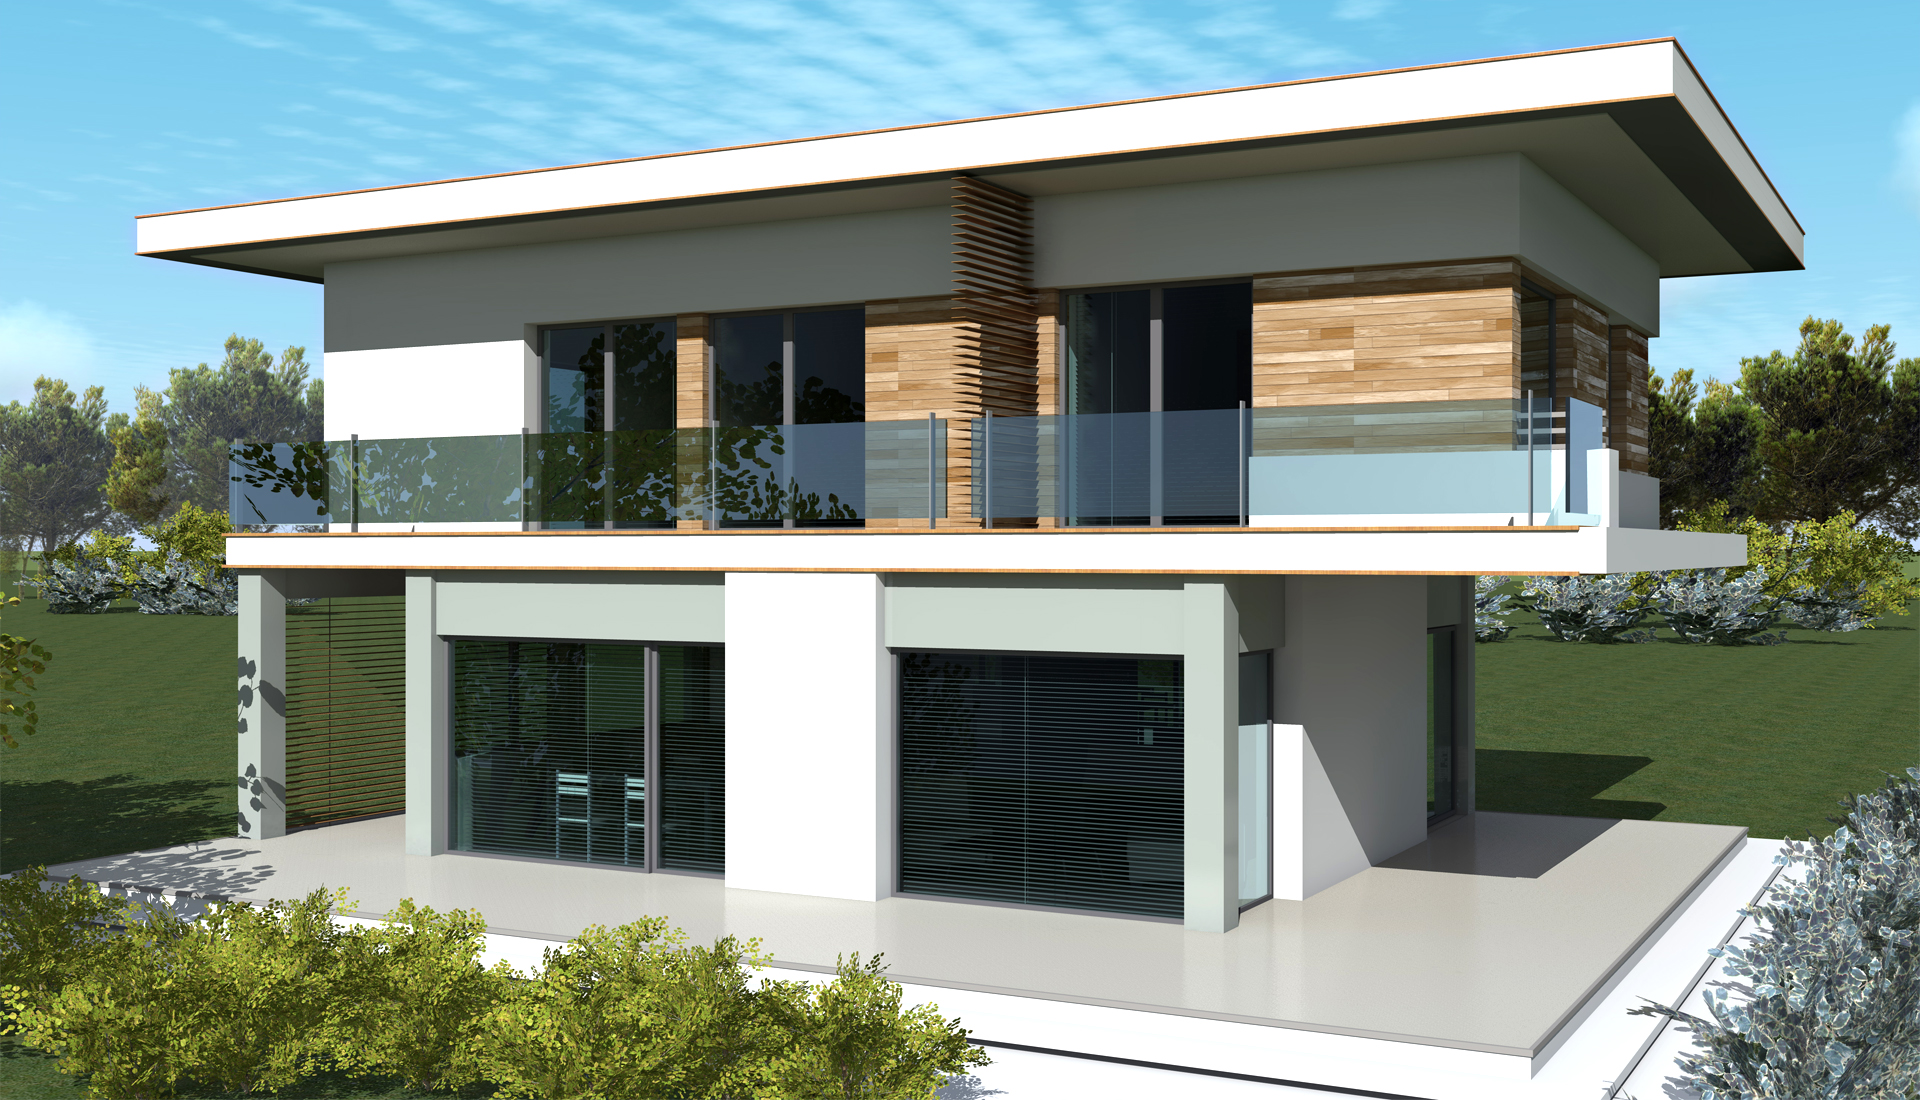 Plan maison contemporaine is 10 150m2 for Prix maison 150 m2 rt 2012